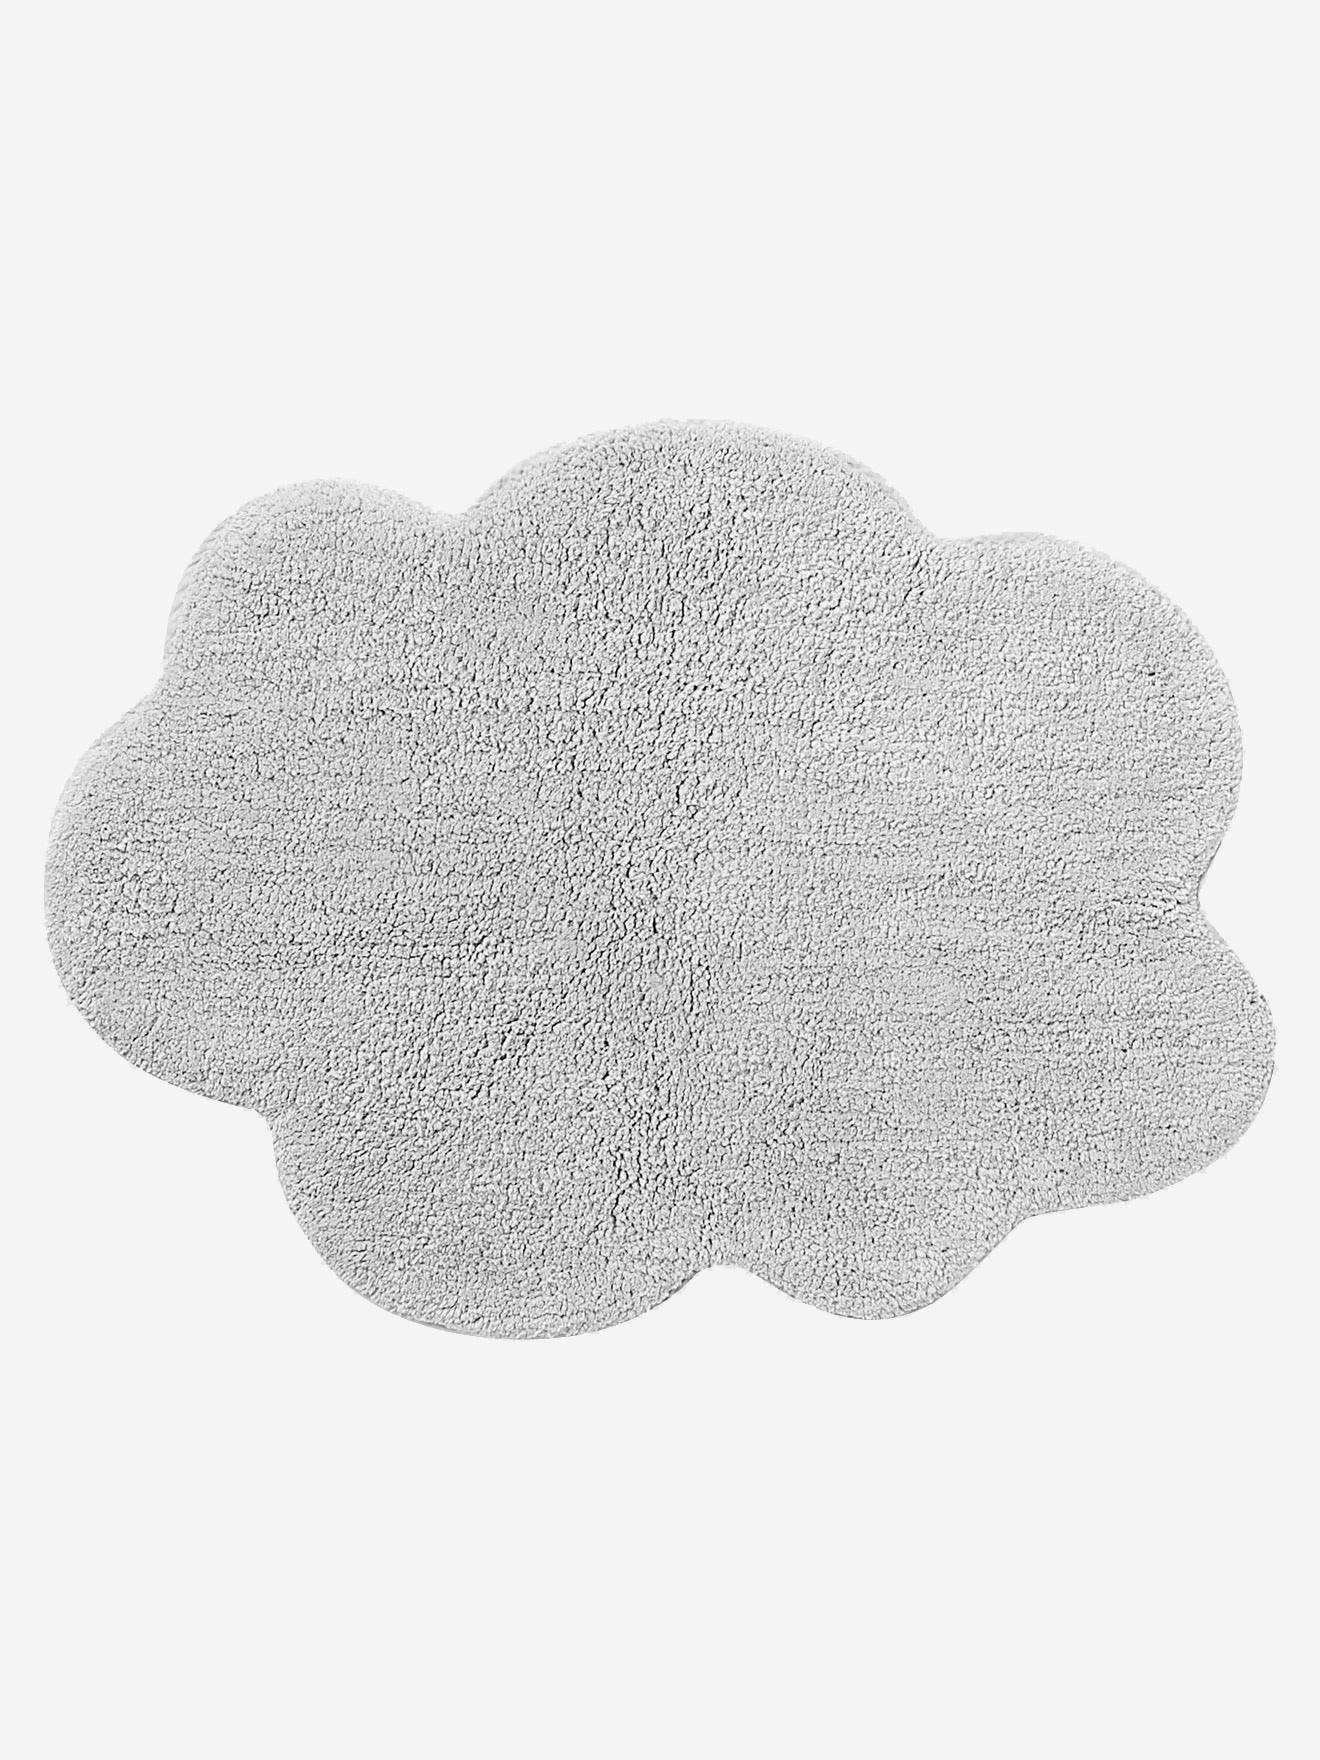 Cloud Rugs Cloud Rug Storage And Decoration Vertbaudet